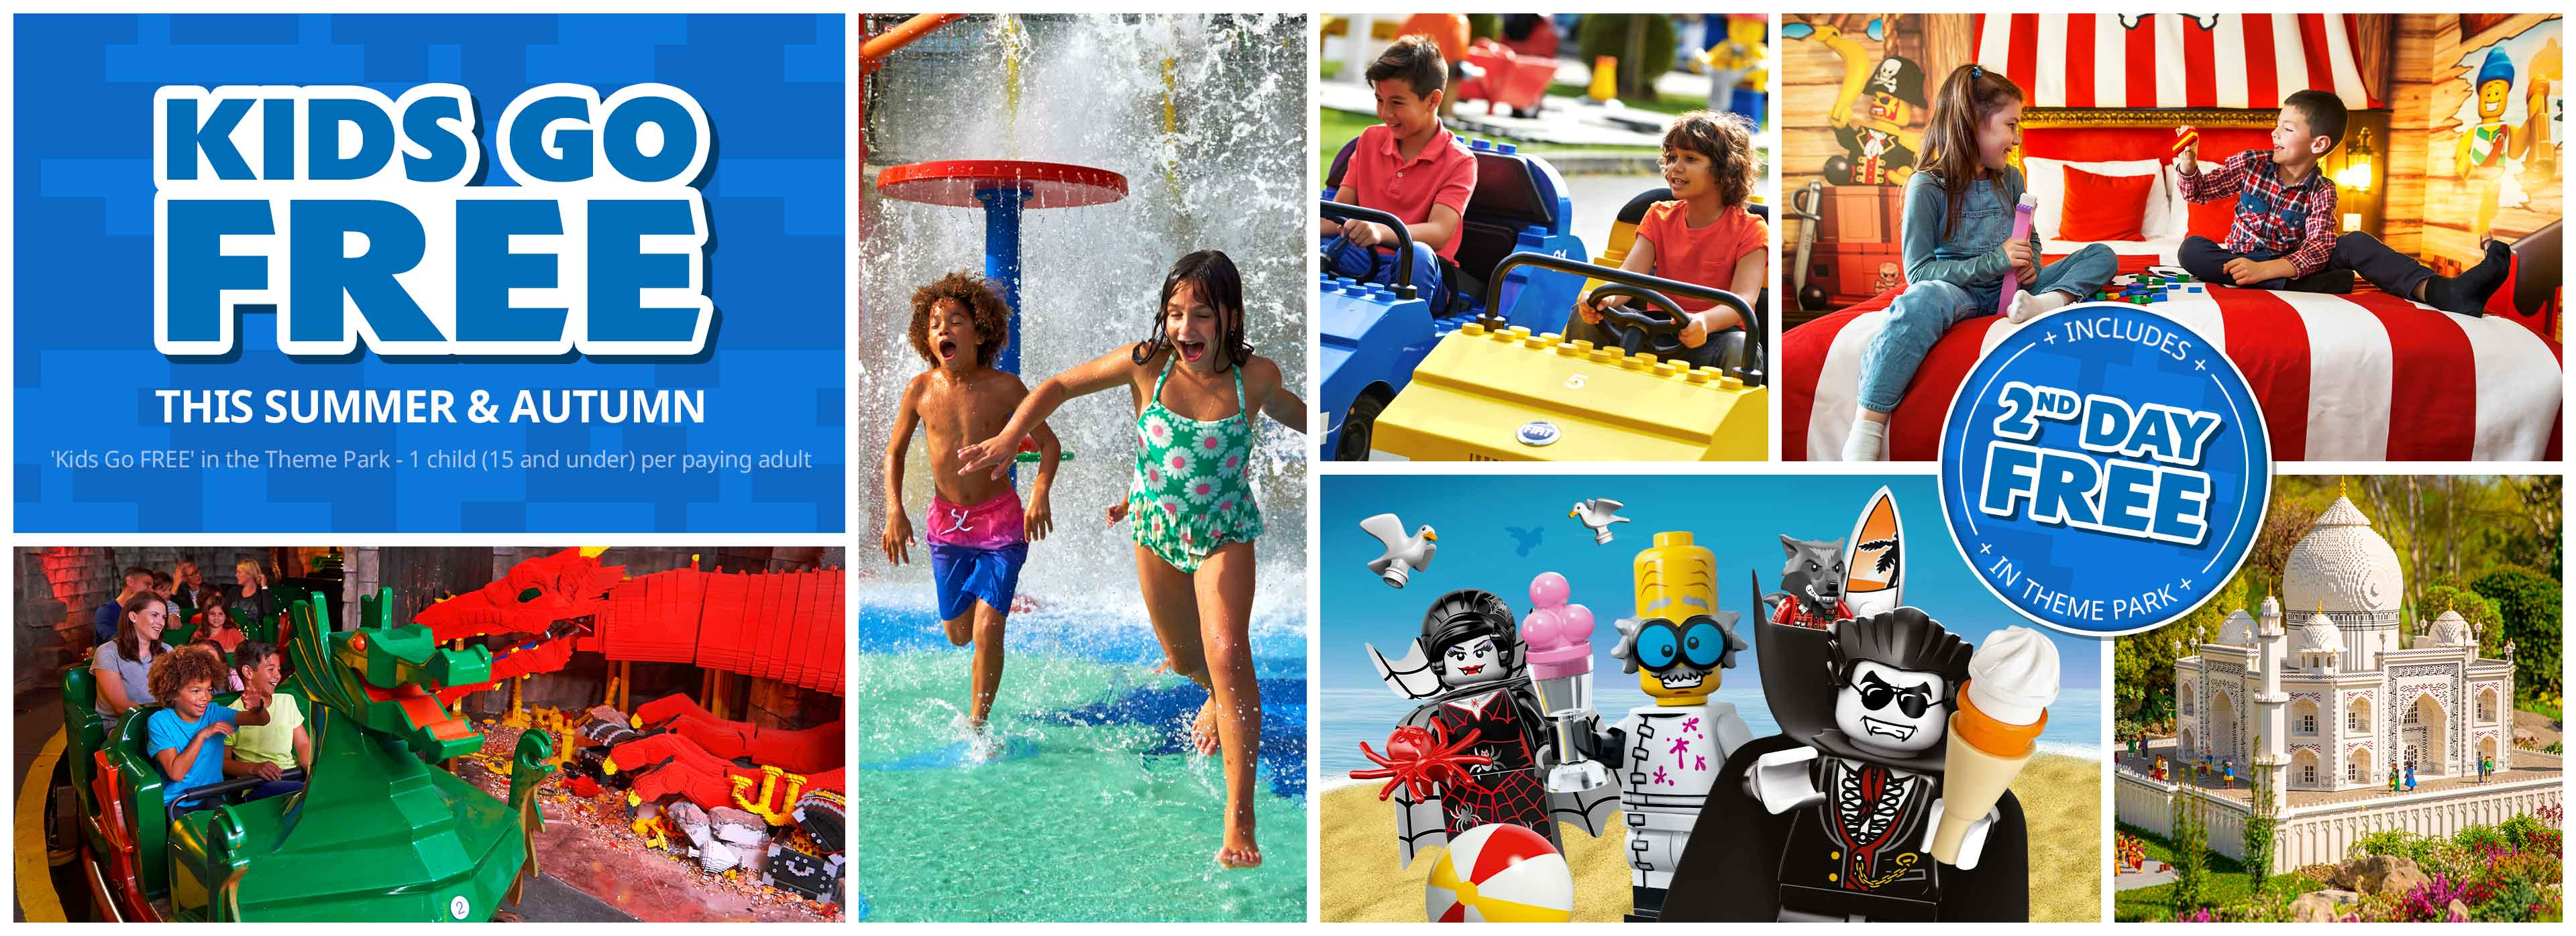 Treat the family to a LEGOLAND<sup>®</sup> Windsor holiday this summer and your Kids Go & Stay FREE!